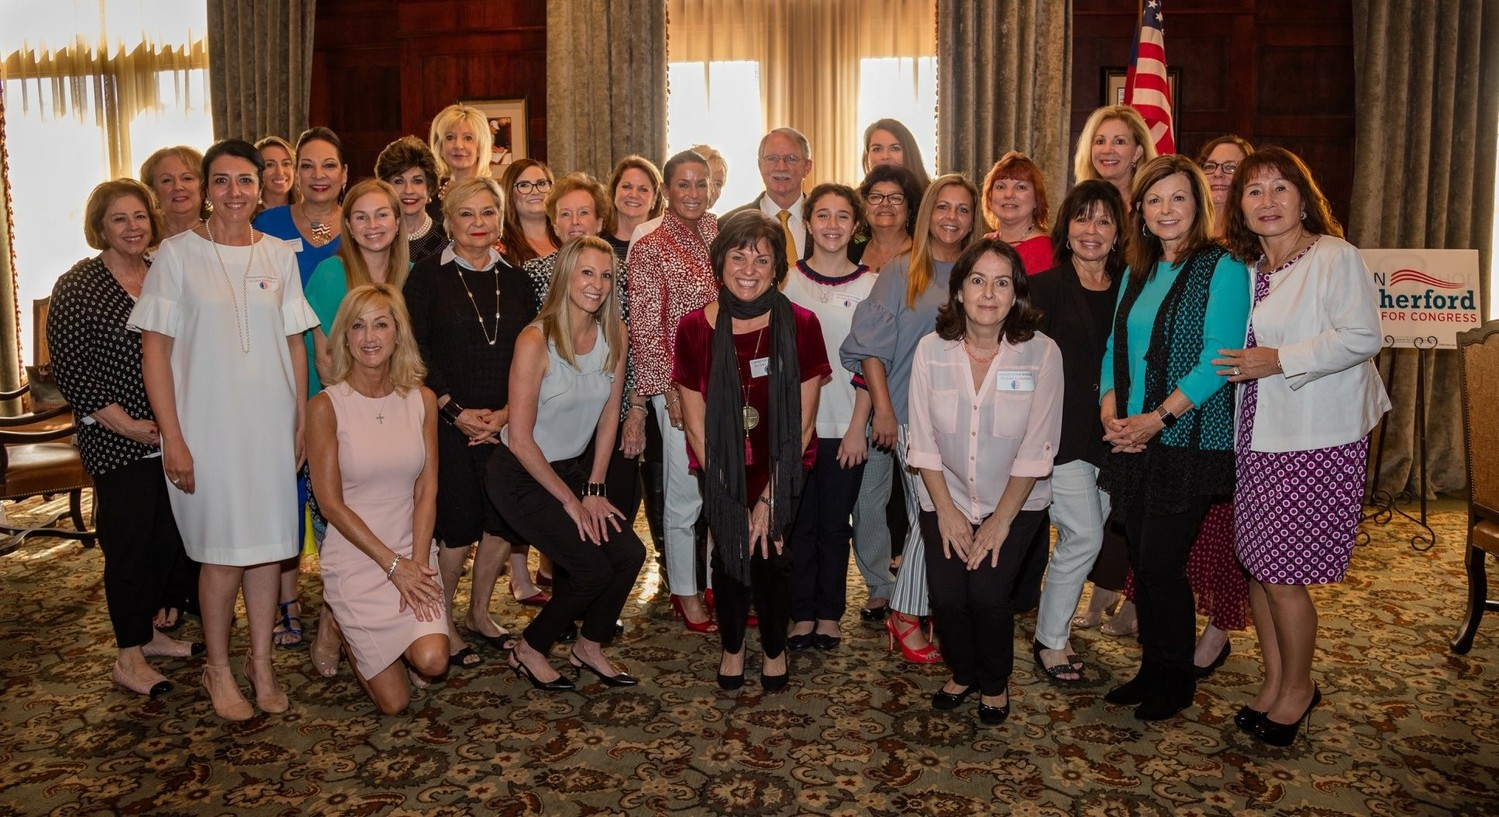 Rutherford gathers with several of the women in attendance of the event.